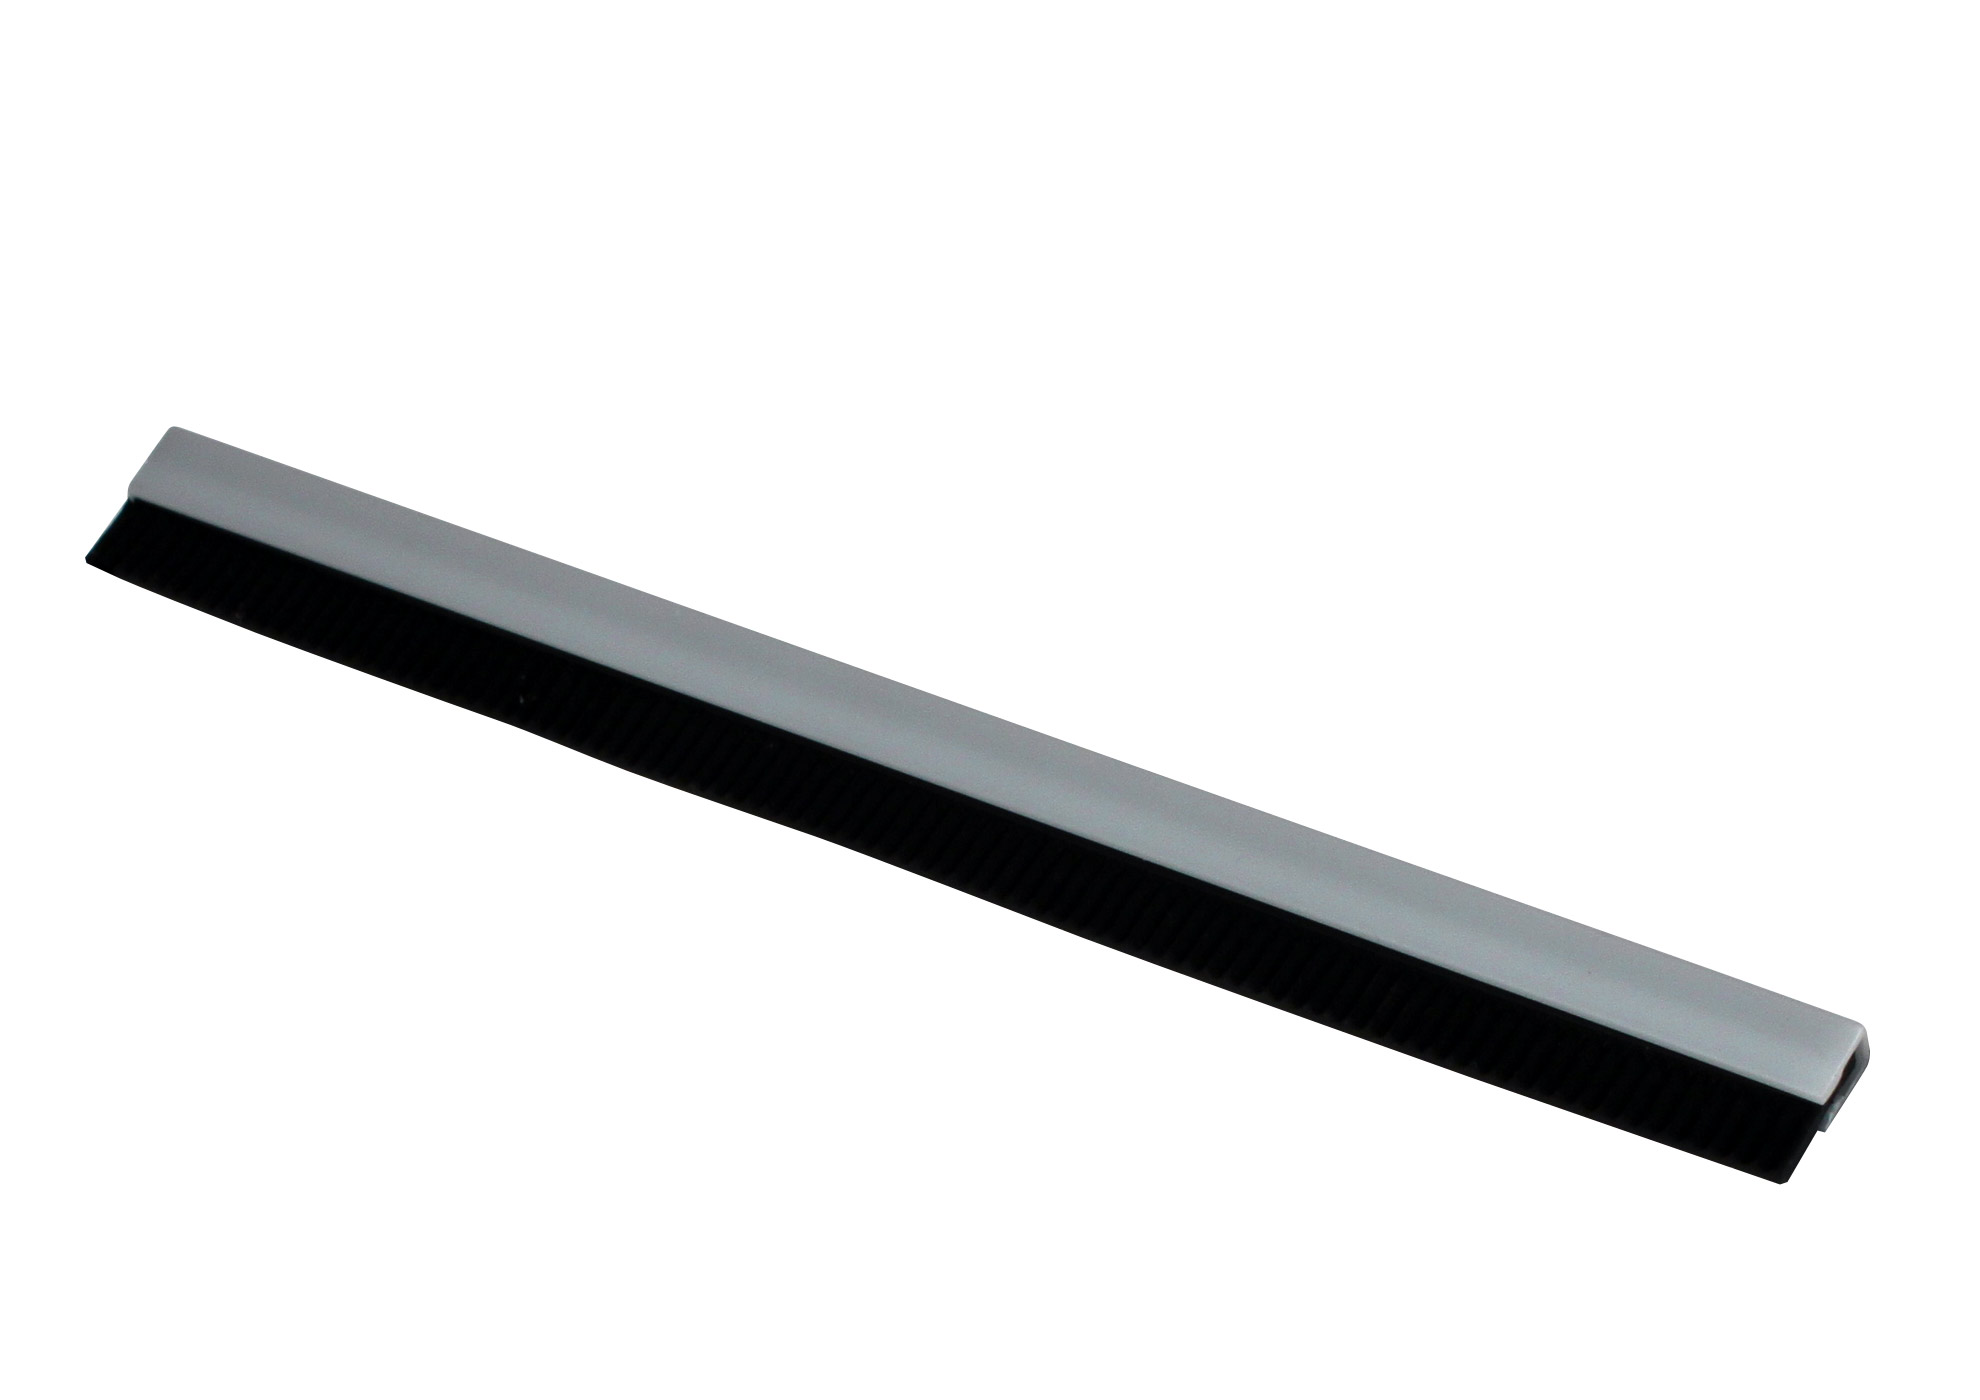 Replacement 10-inch Squeegee Blade